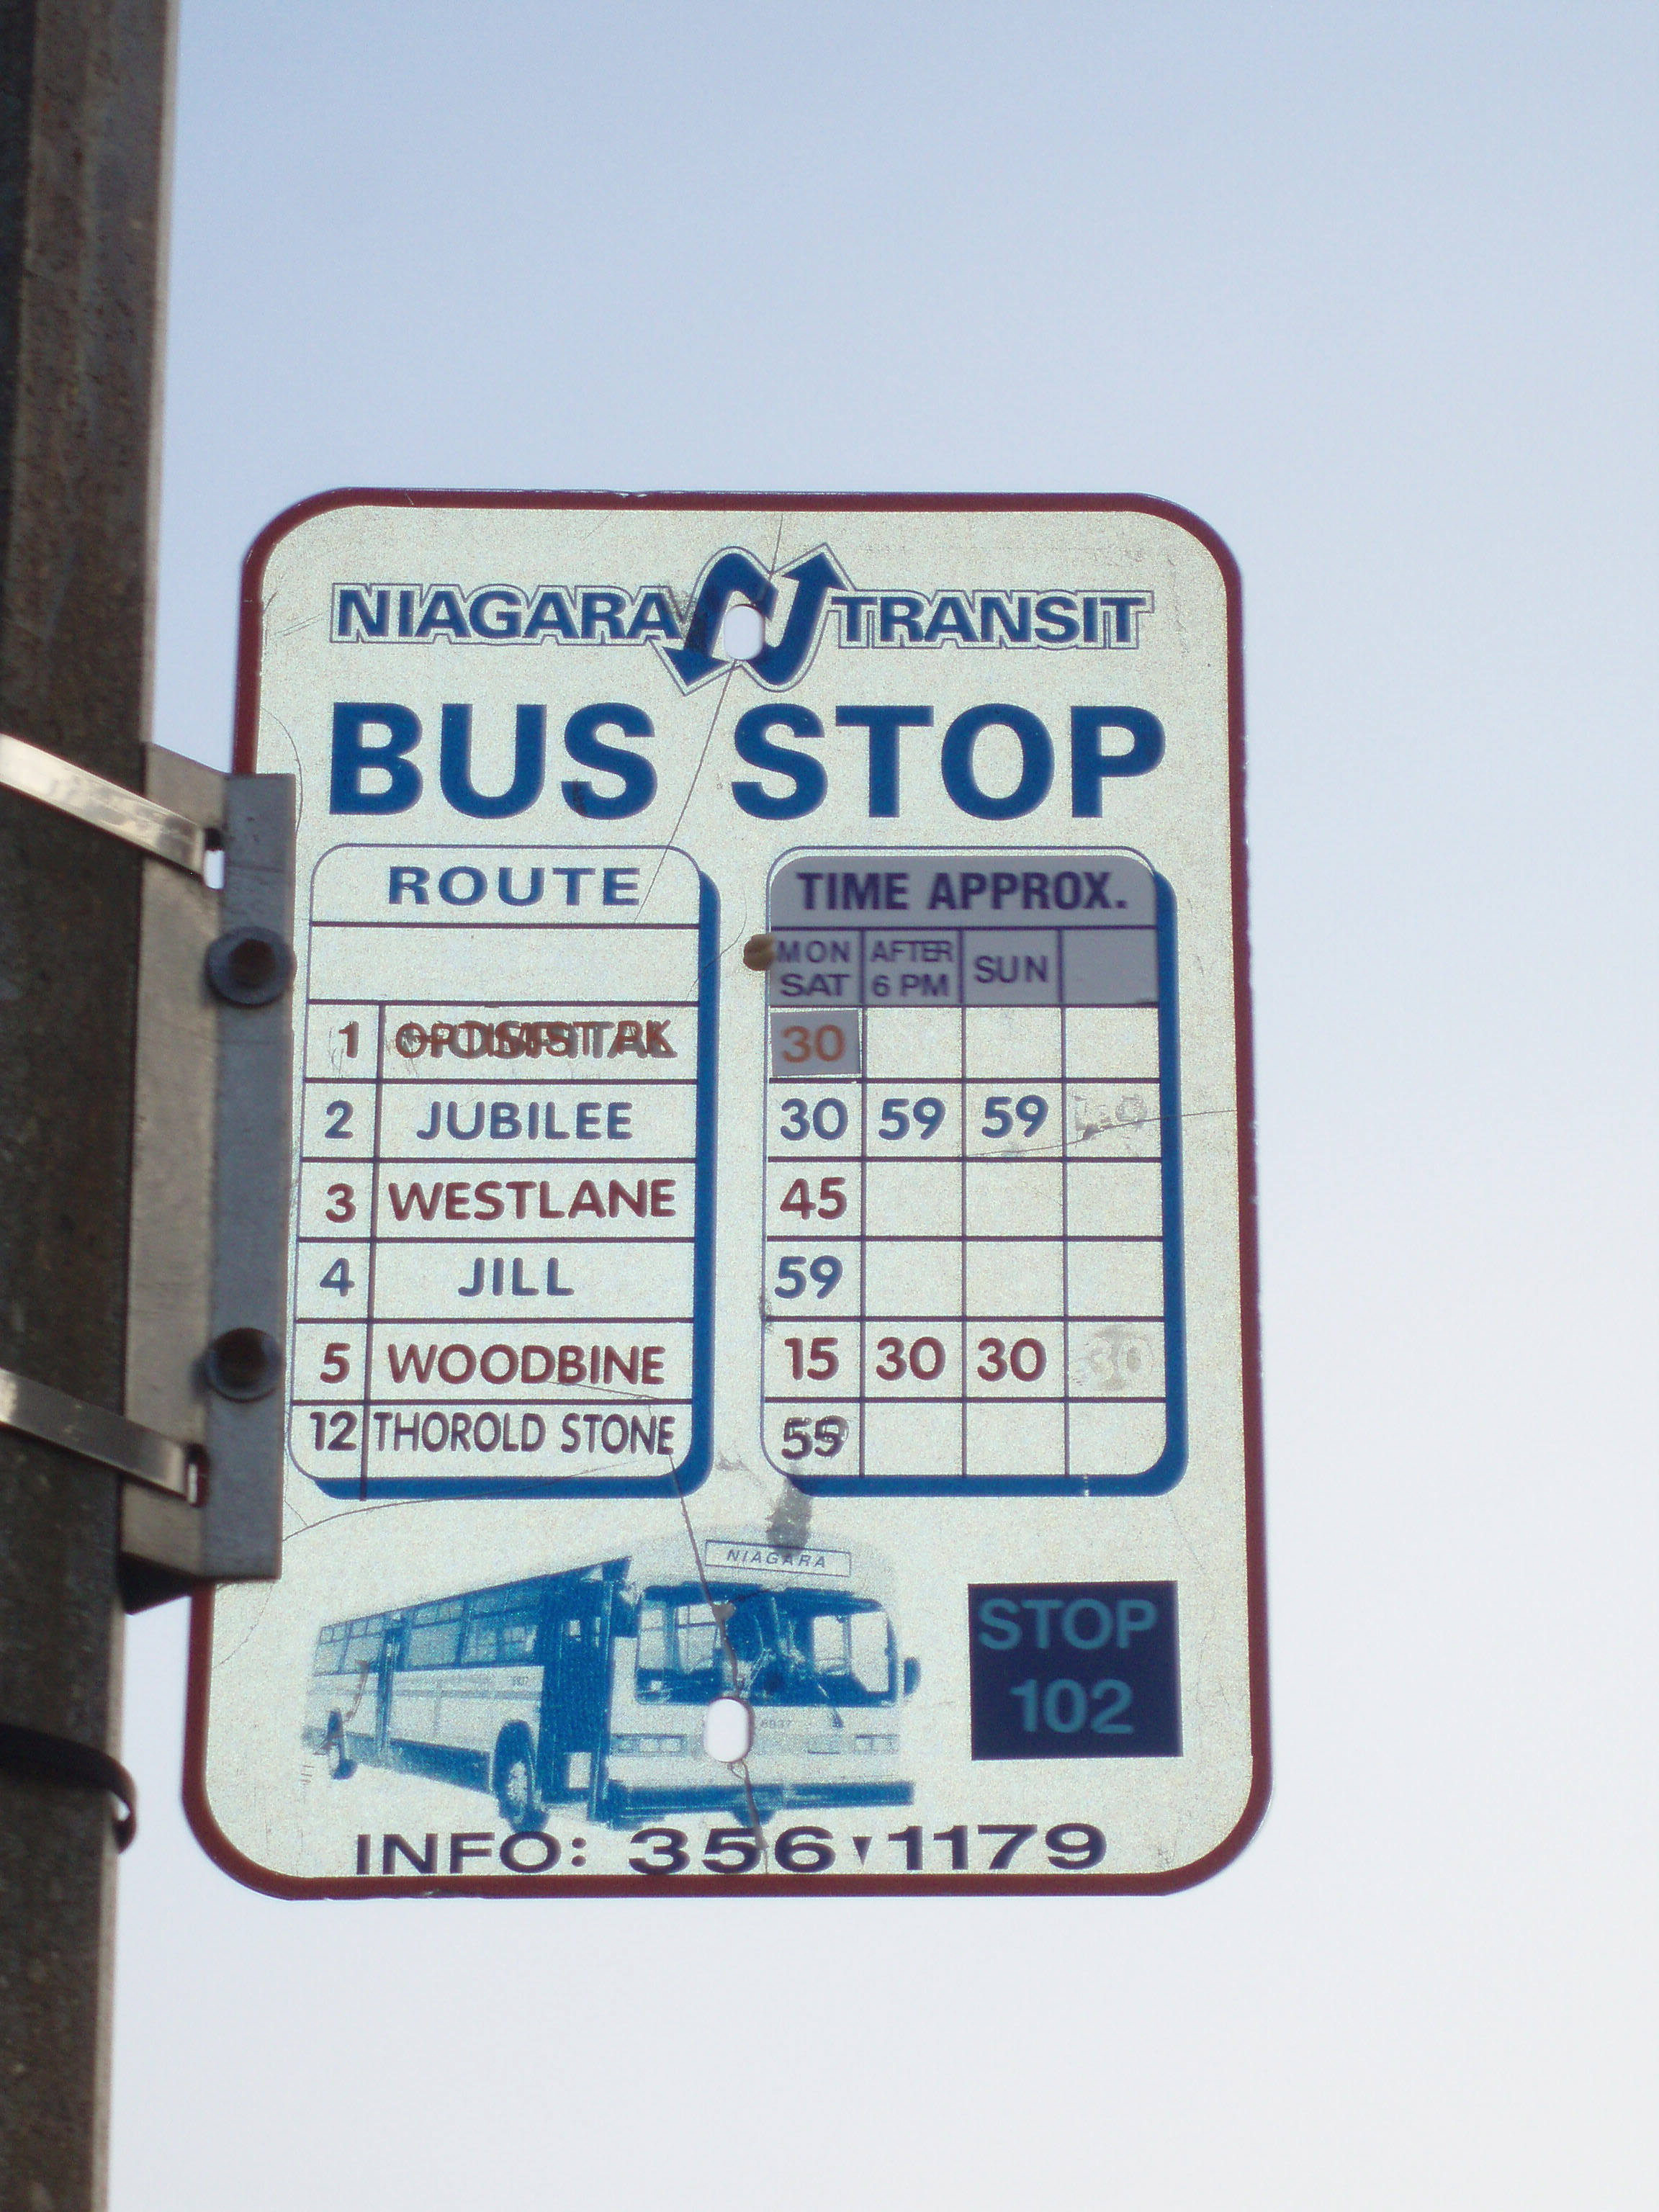 Bus Stop Outside Restaurant Good Or Bad For Business